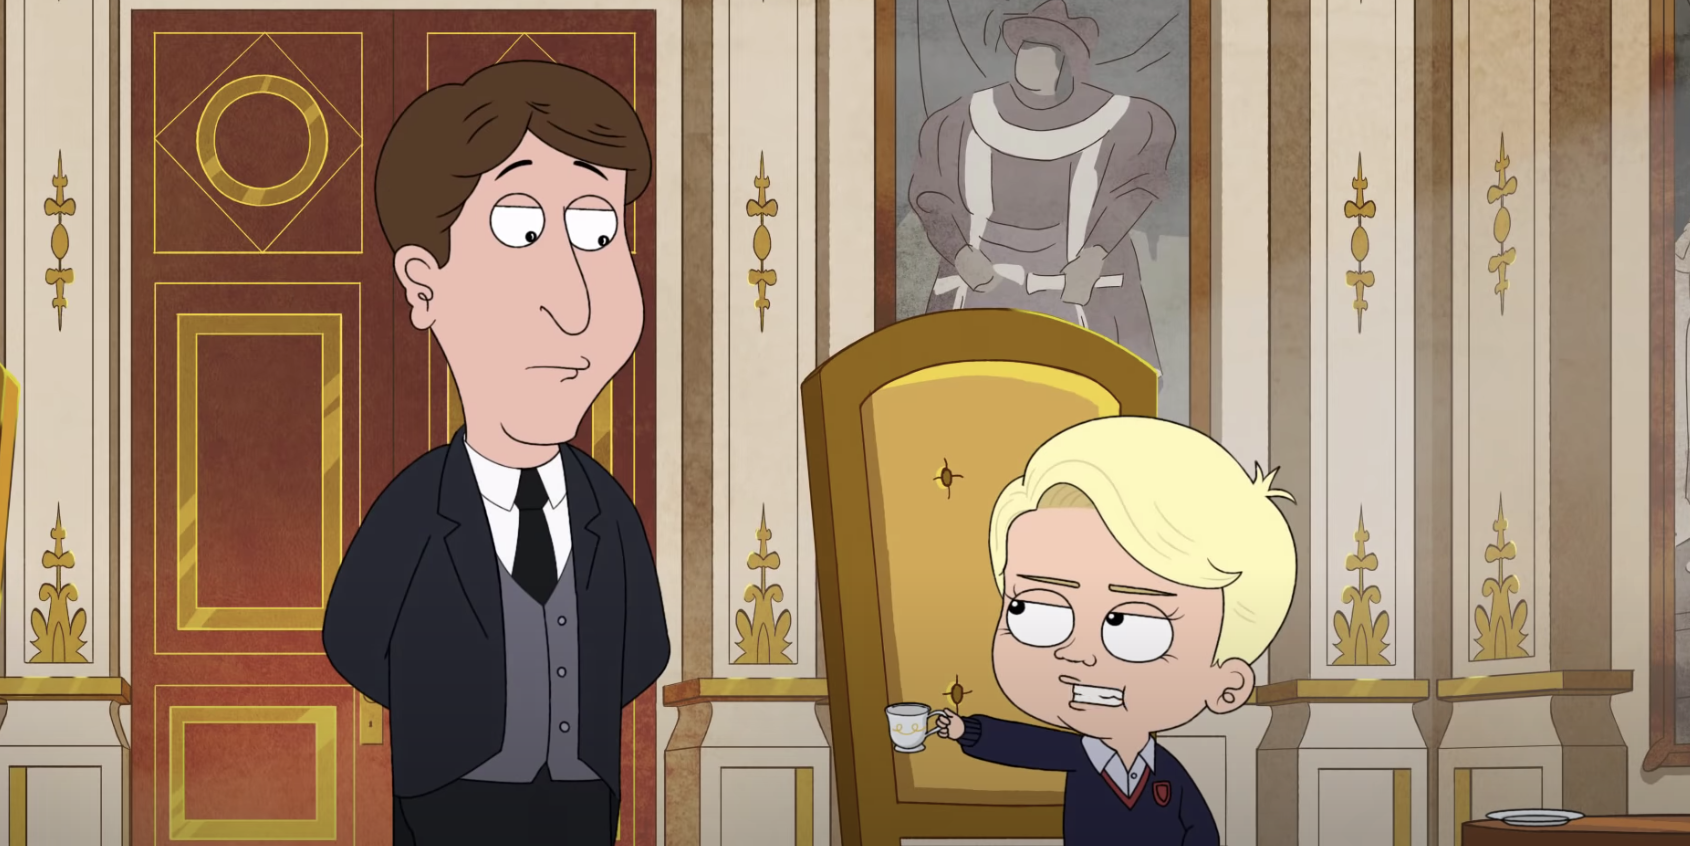 HBO Max's Royal Animated Comedy From the Team Behind Family Guy